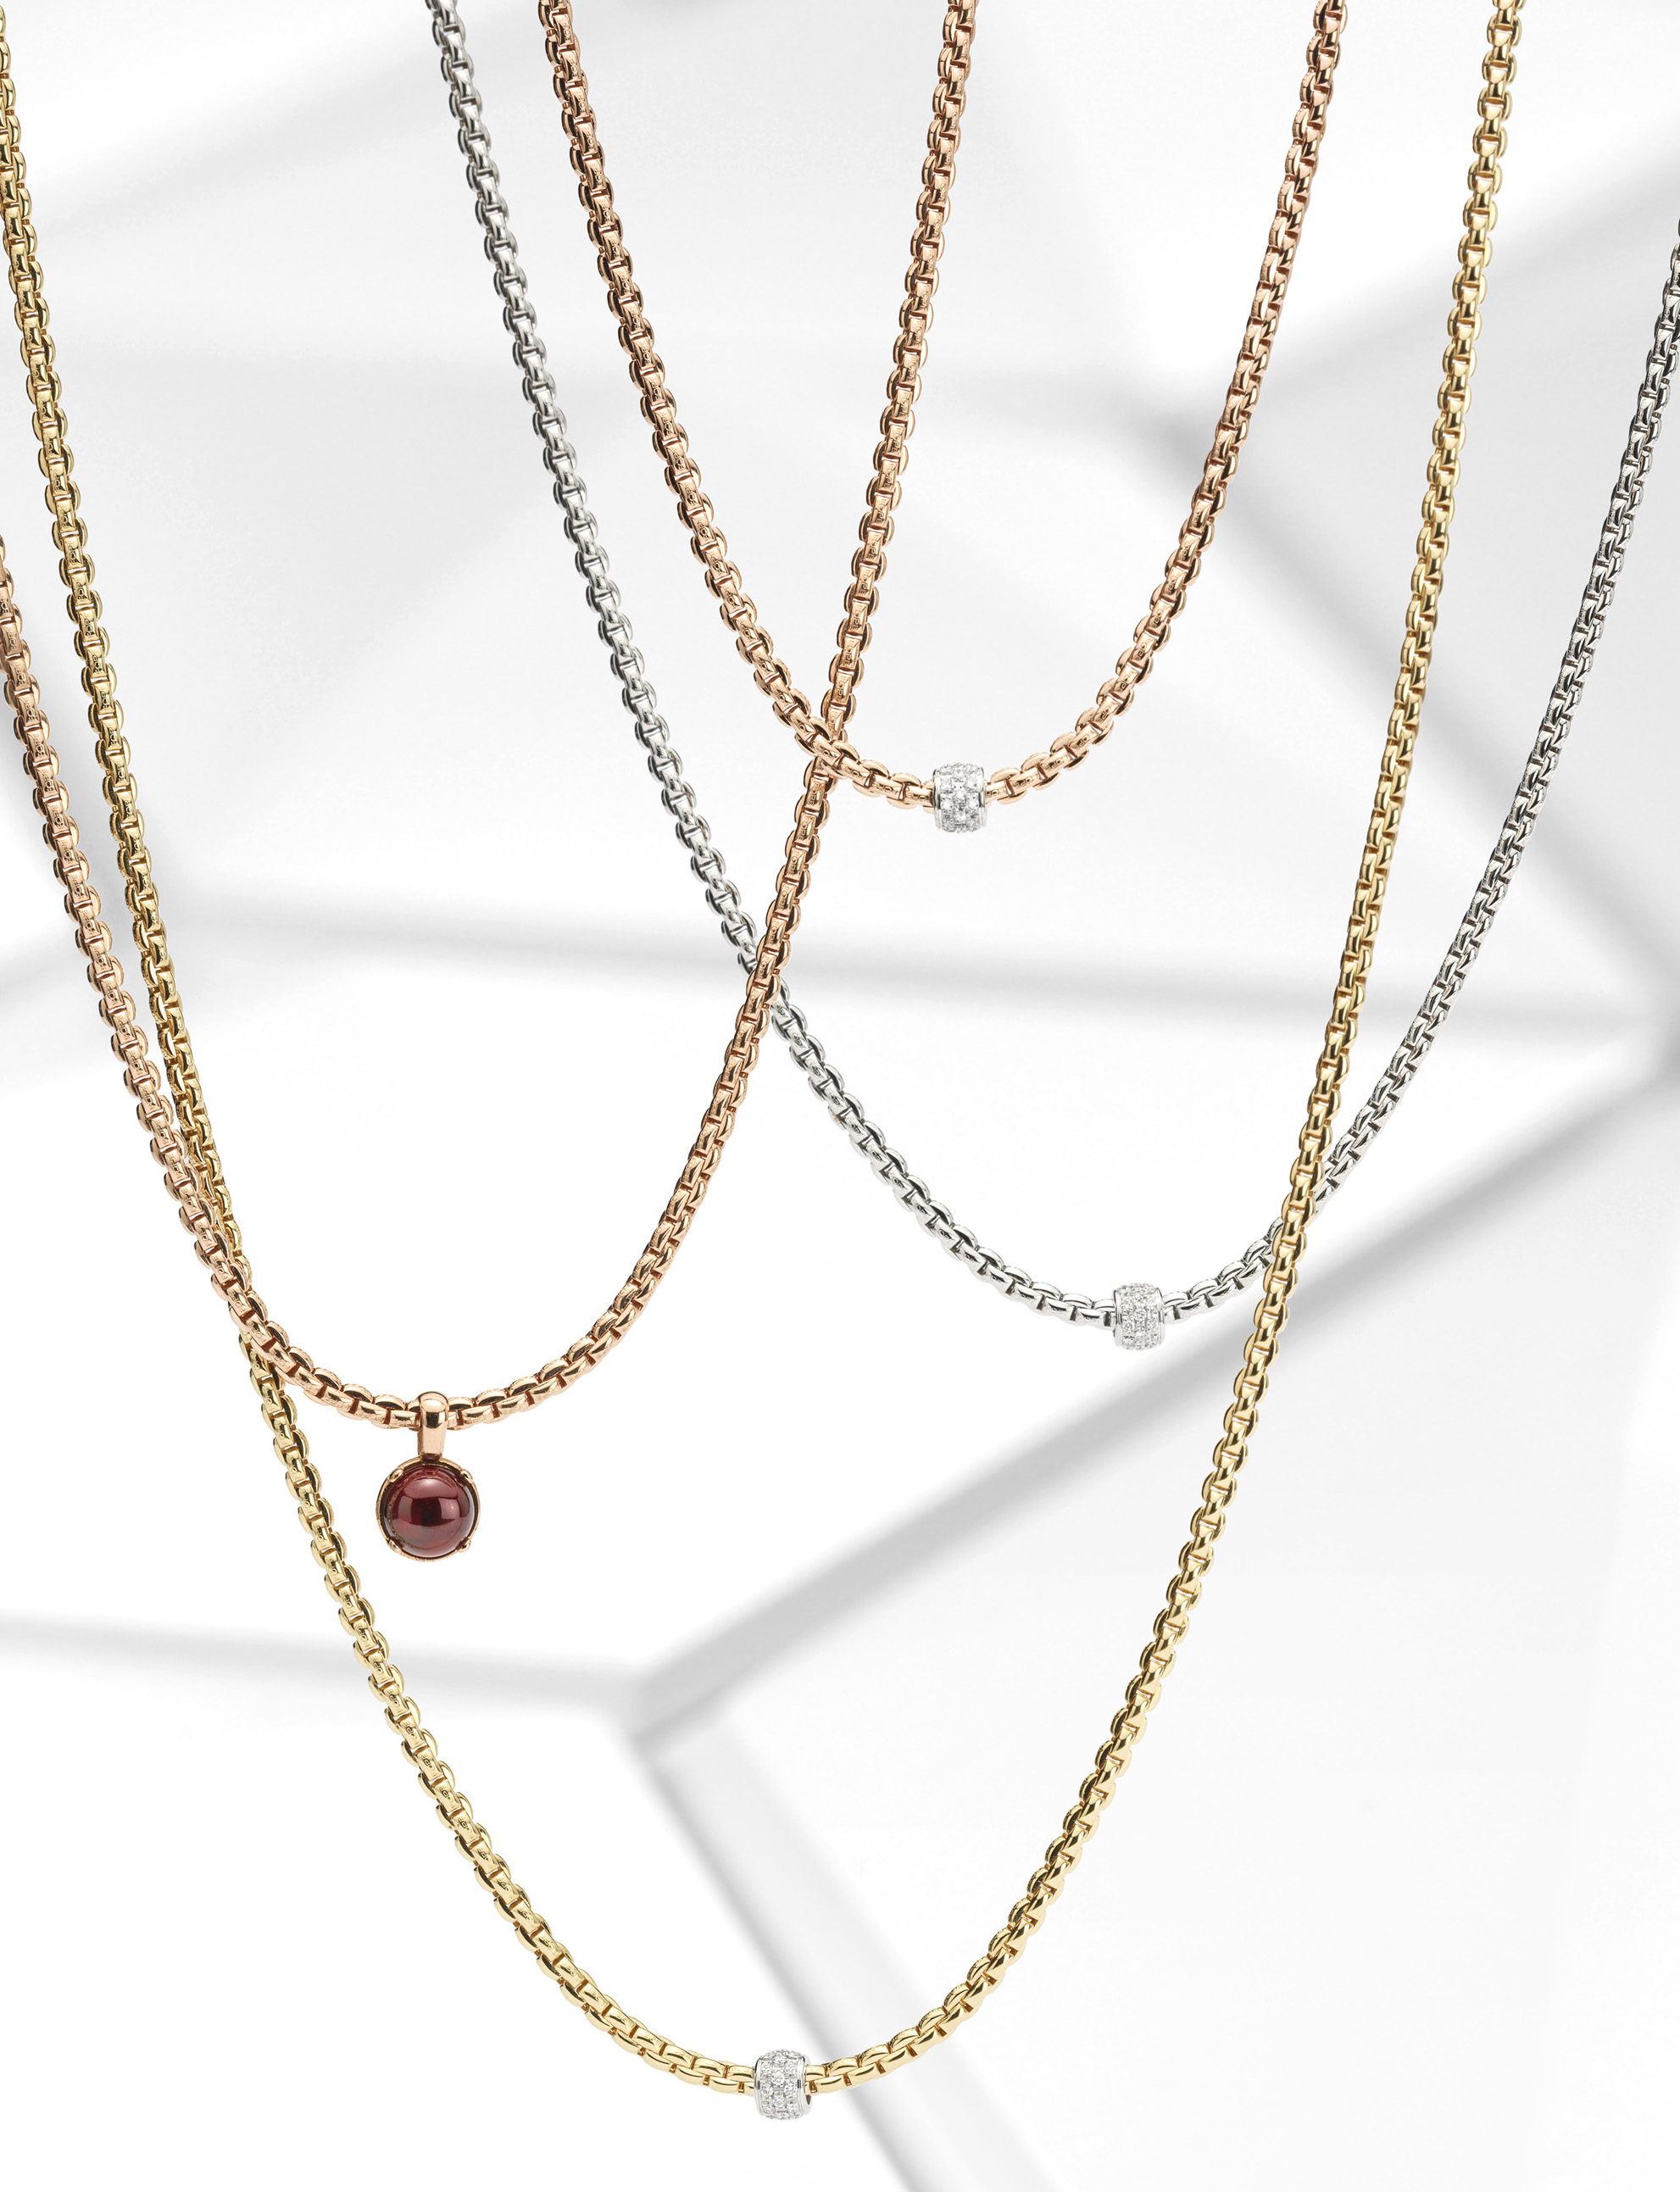 Fope Eka tiny collection necklaces | JCK On Your Market